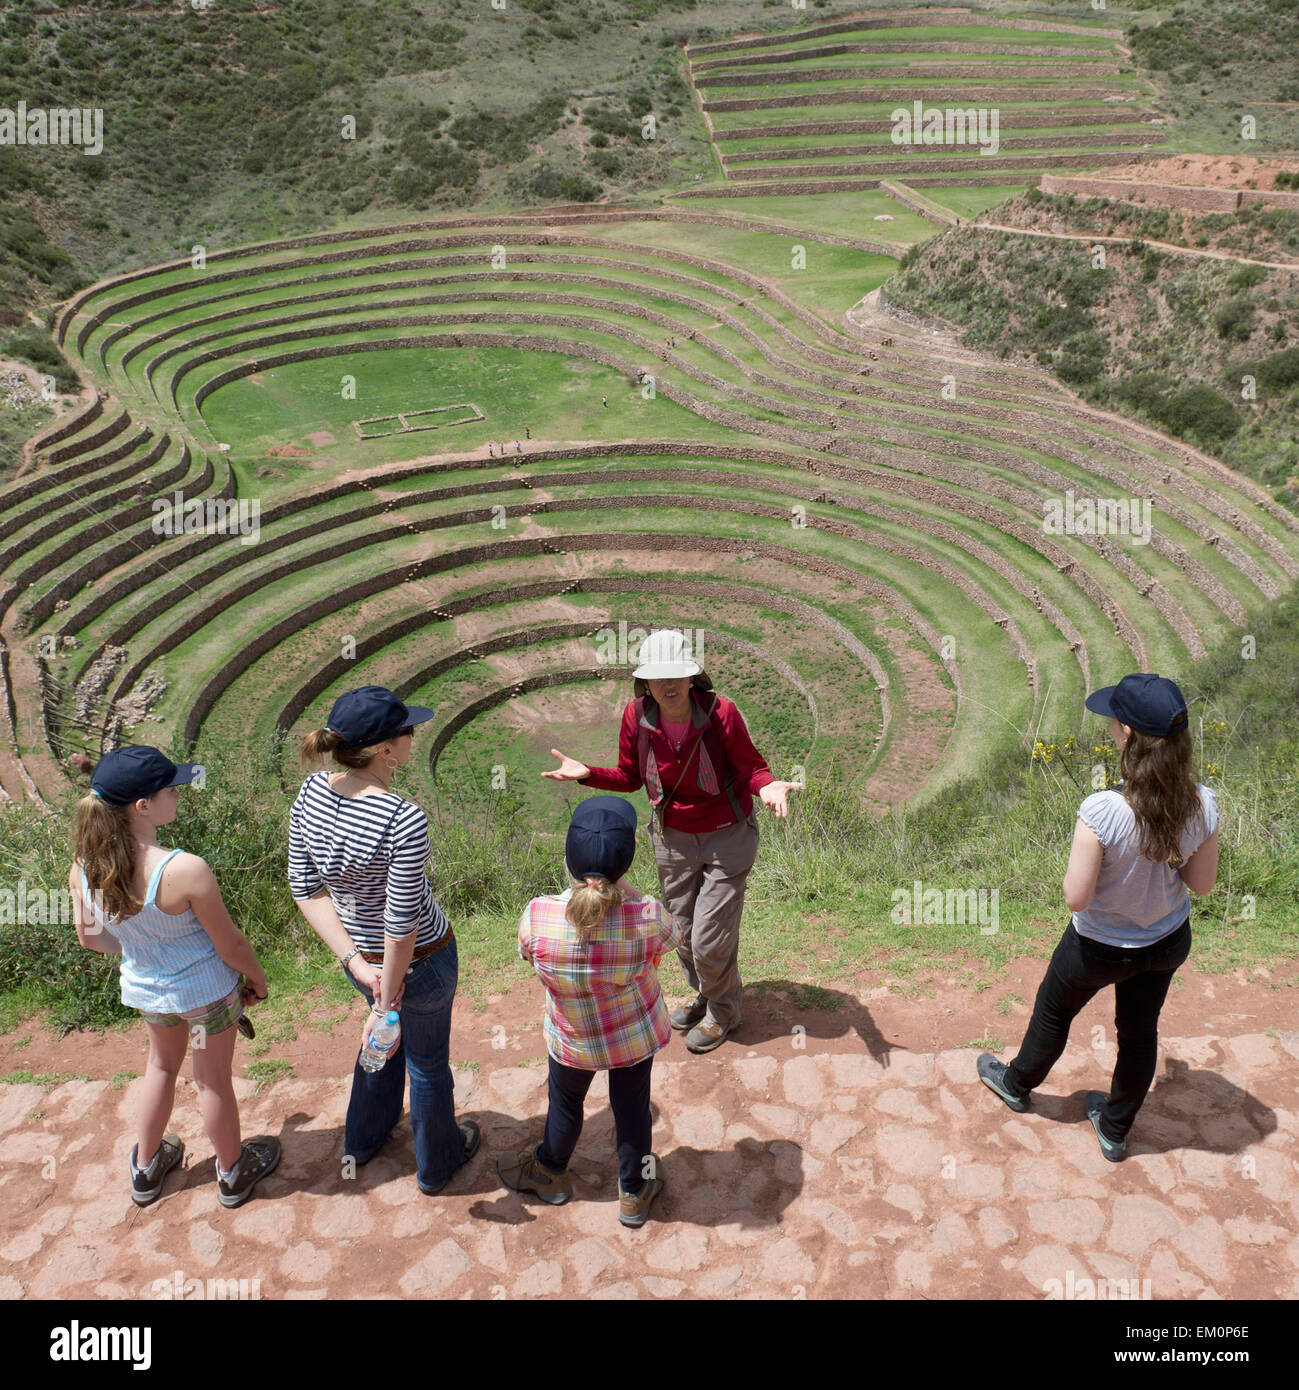 A Group Of Young Women Overlook Concentric Ring Terraces As Part Of The Inca Ruins; Moray Peru - Stock Image